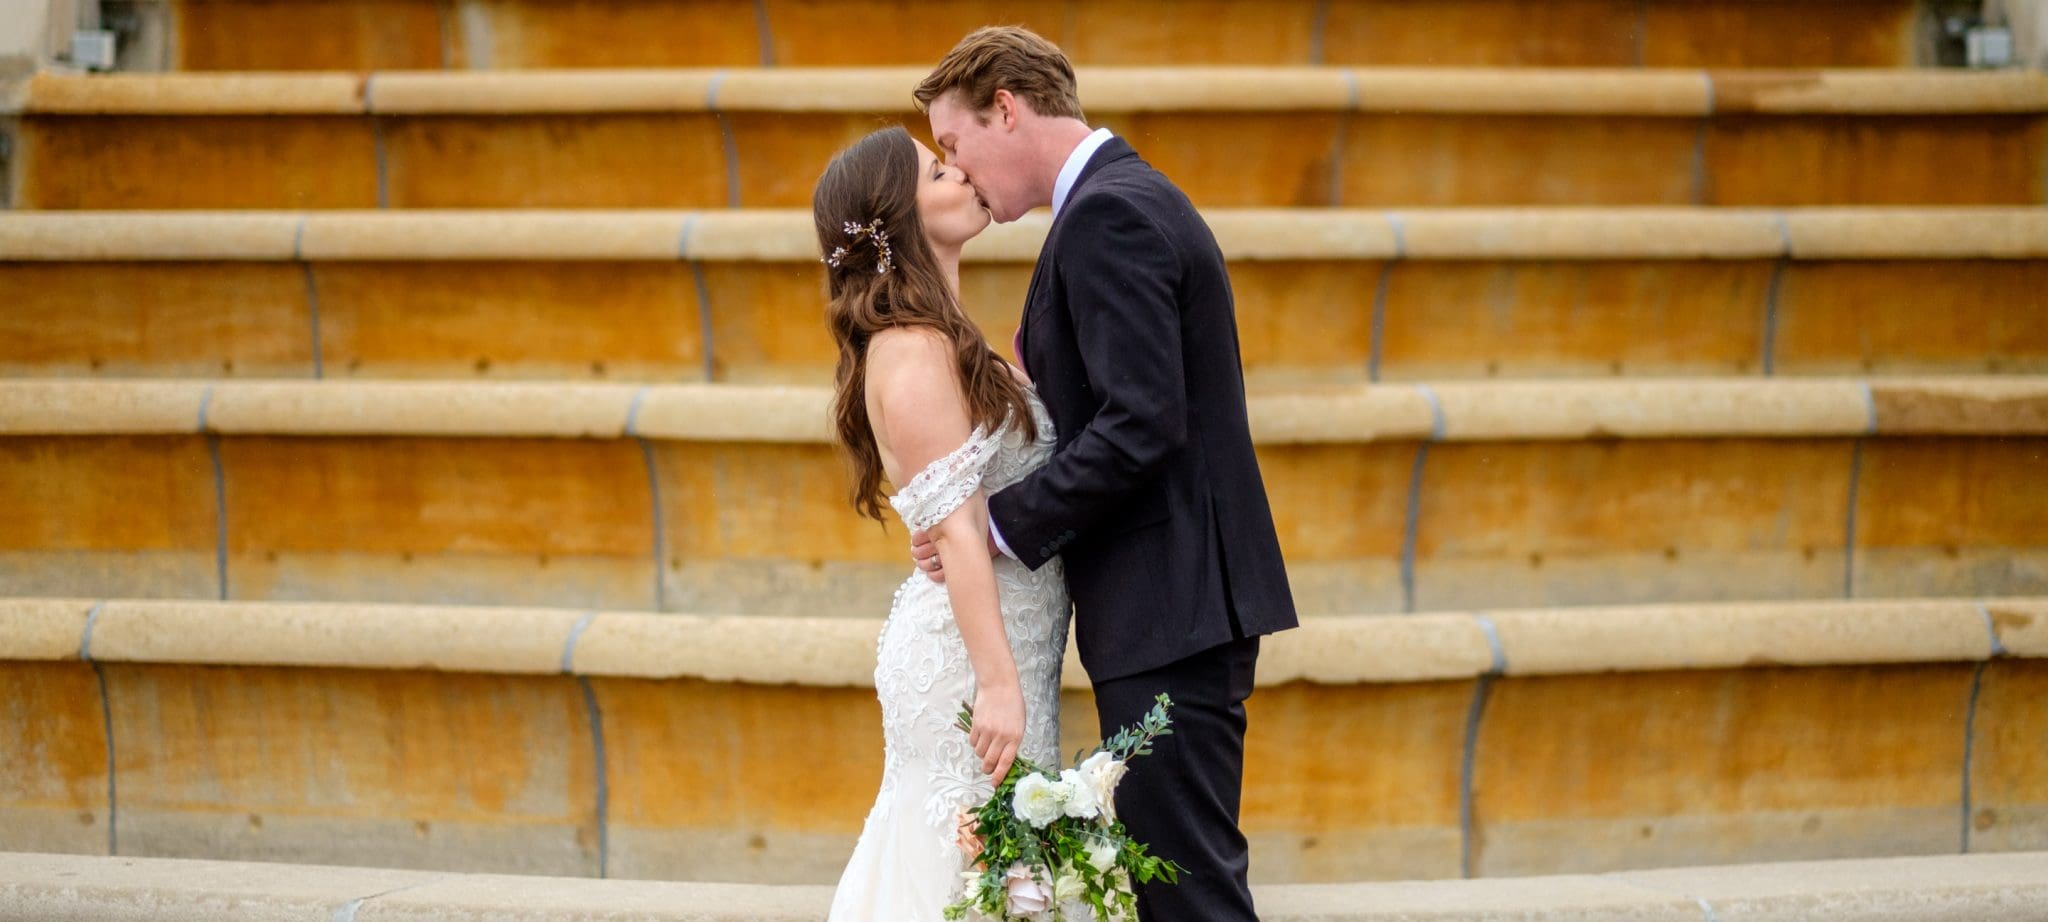 Bride and Groom kiss in front of steps at Ault Park Cincinnati Ohio